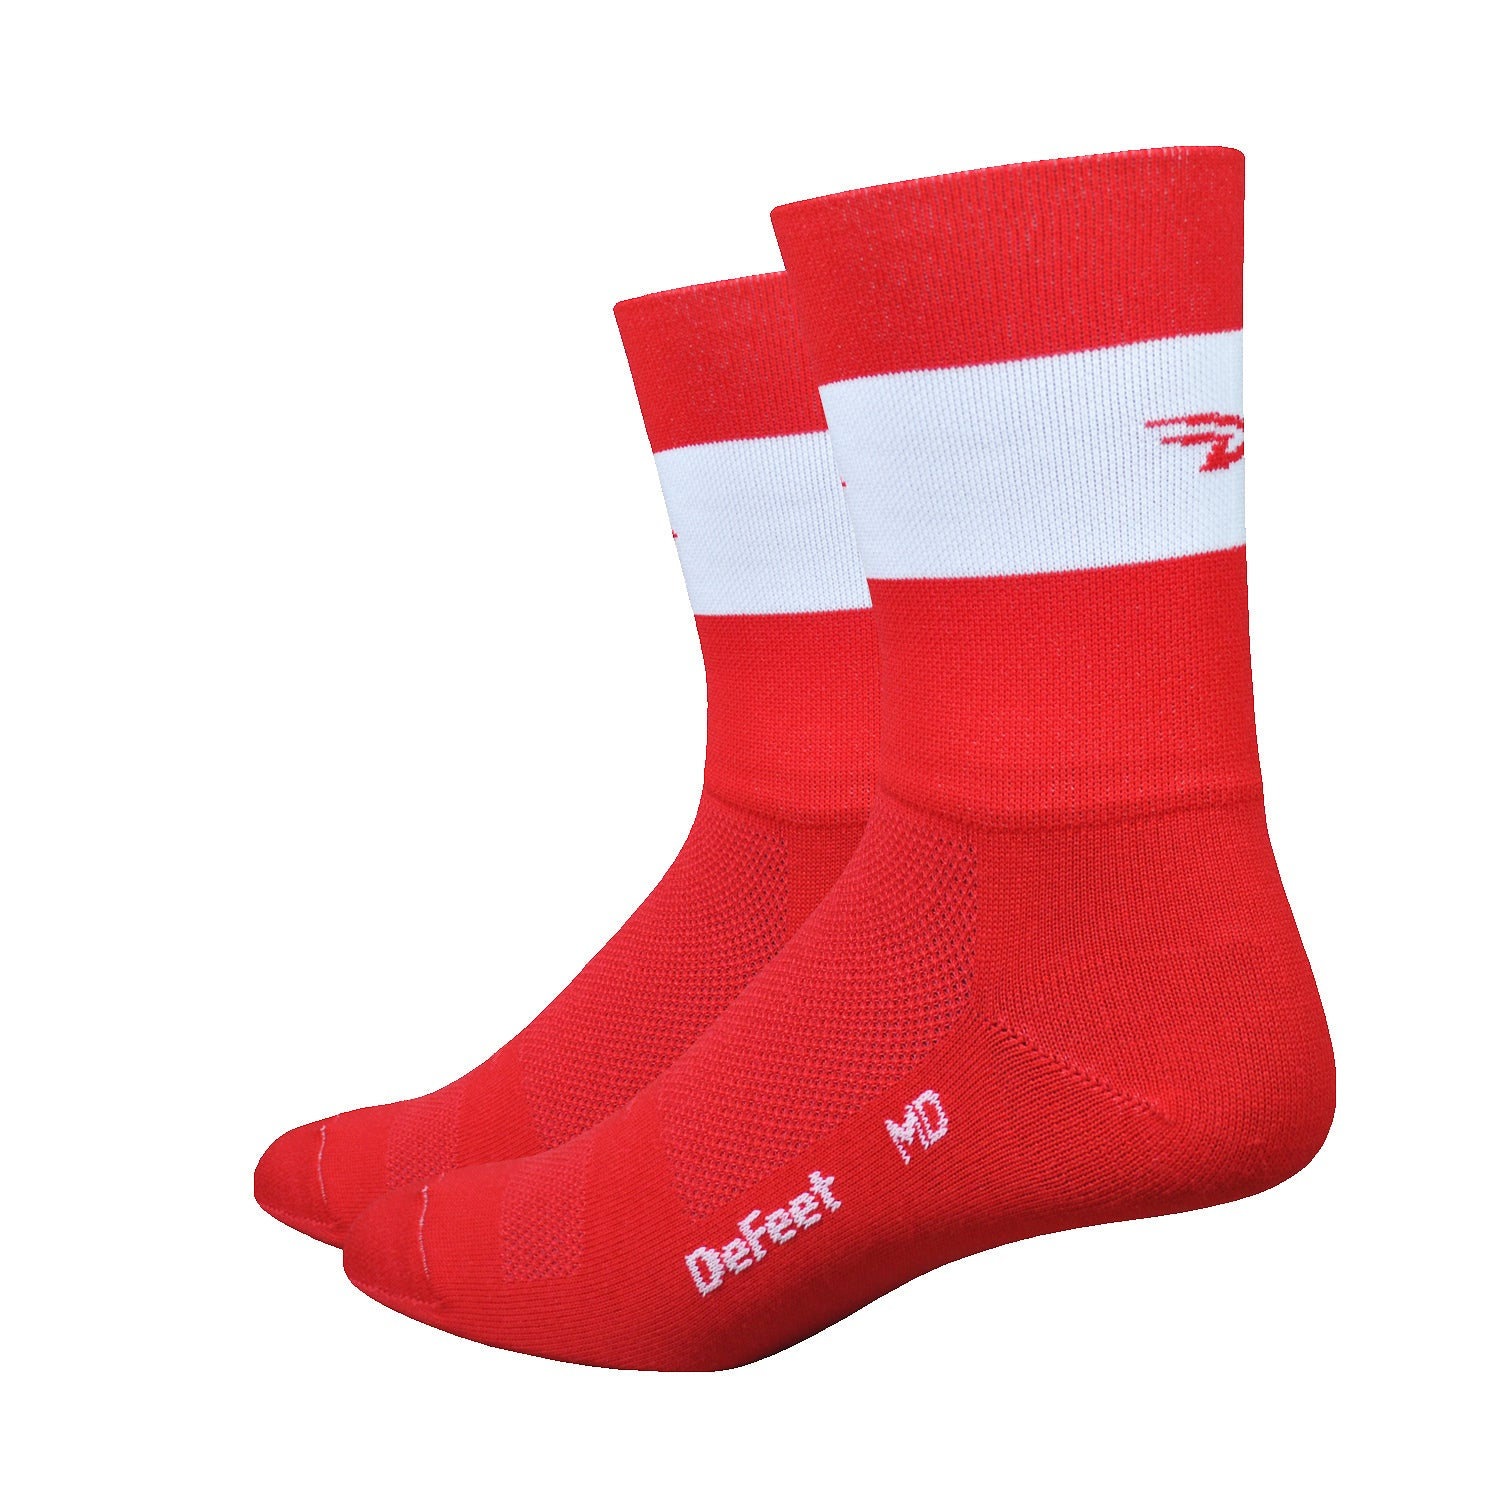 "Aireator 5"" Team DeFeet (Scarlet w/White Stripe)"